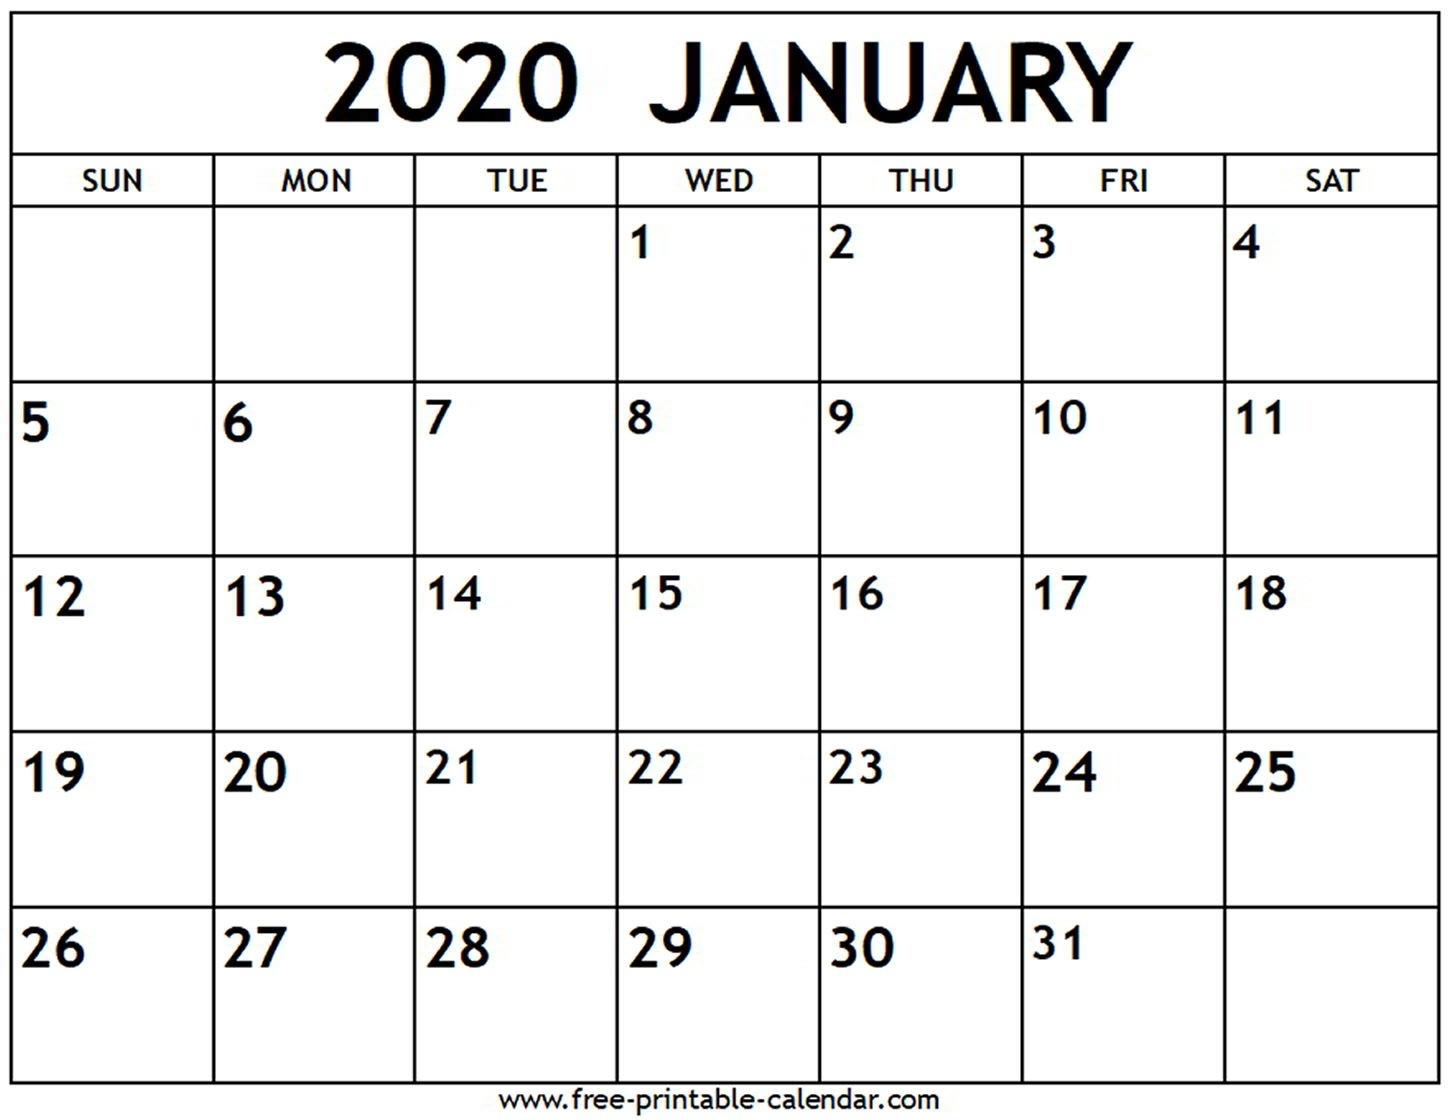 January 2020 Calendar - Free-Printable-Calendar-Images Of January 2020 Calendar